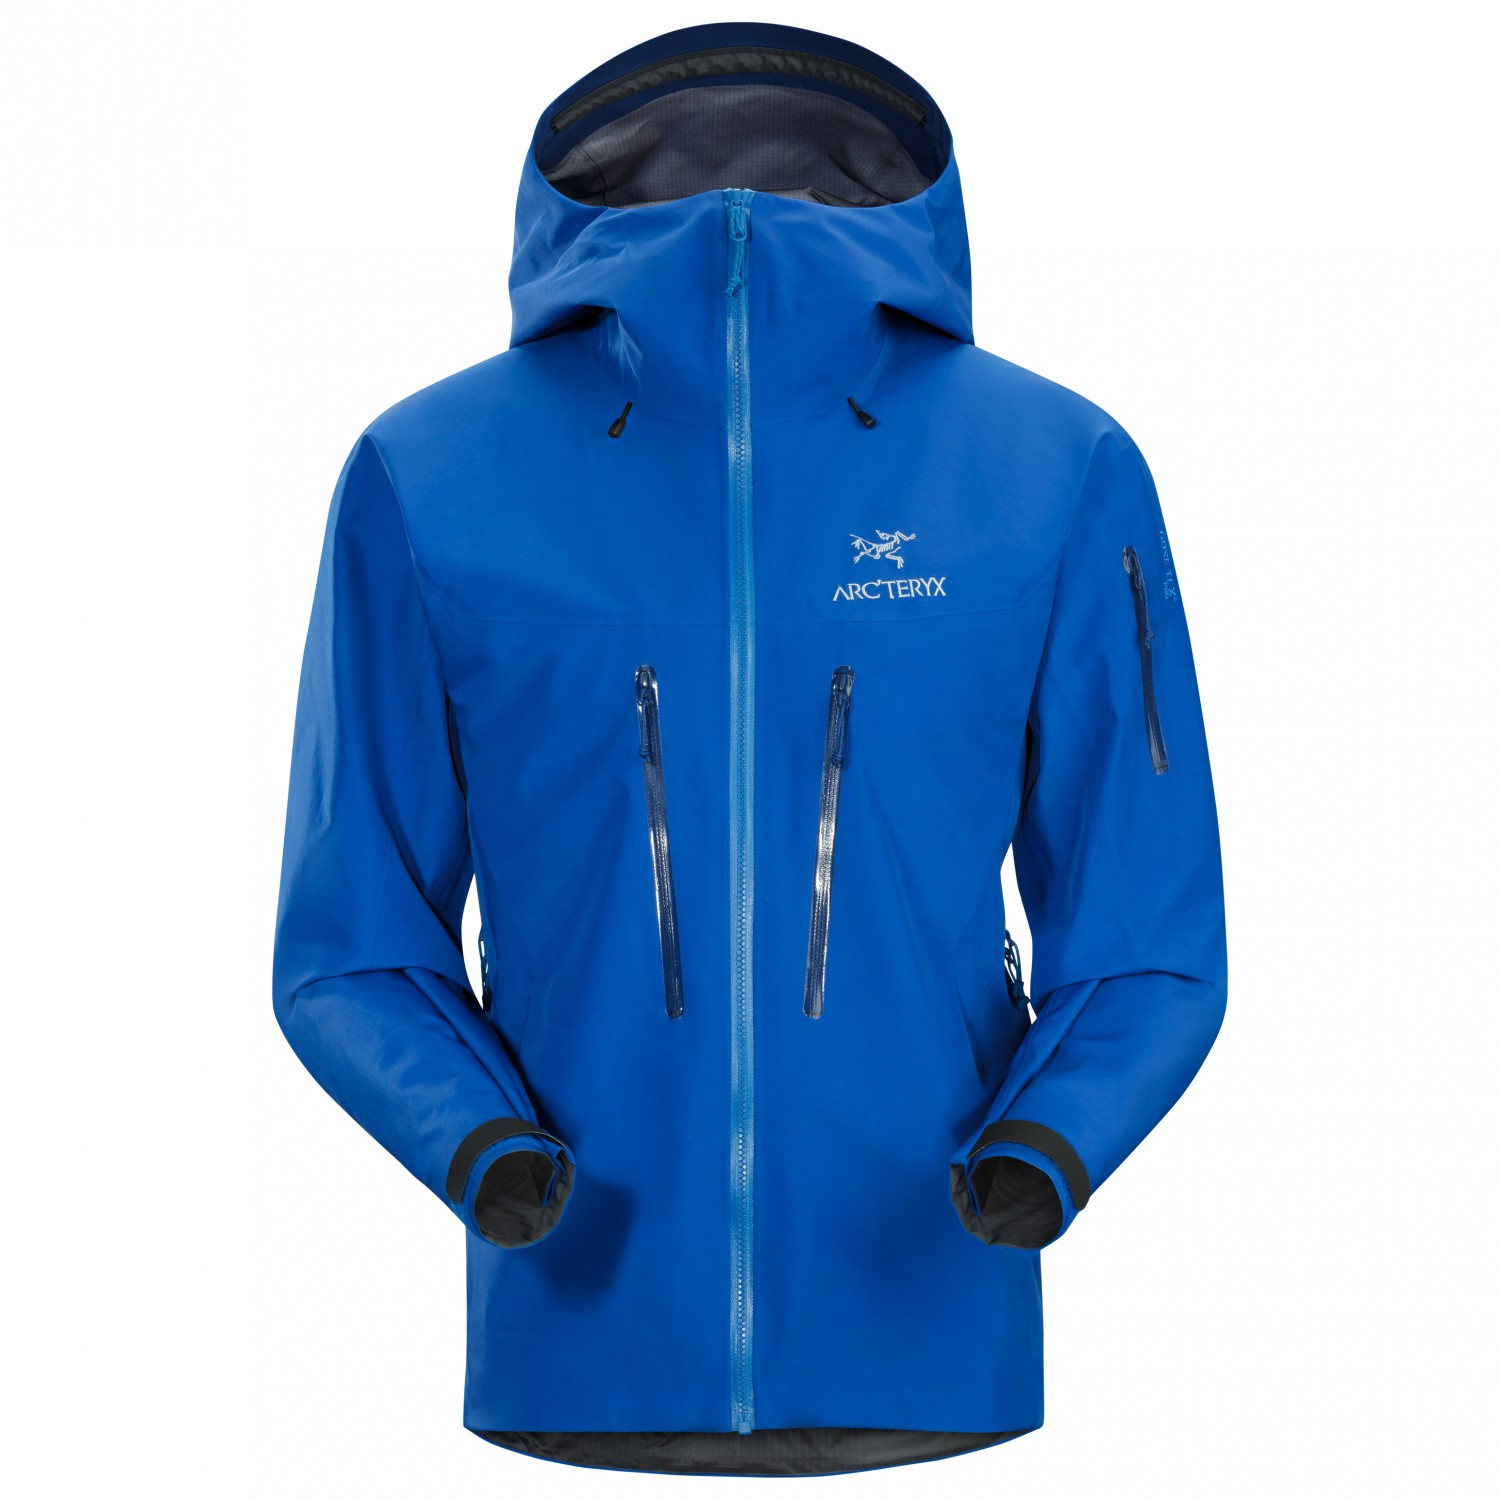 0ee744dc631 Arc'teryx Alpha SV Jacket - Waterproof jacket Men's | Free EU ...